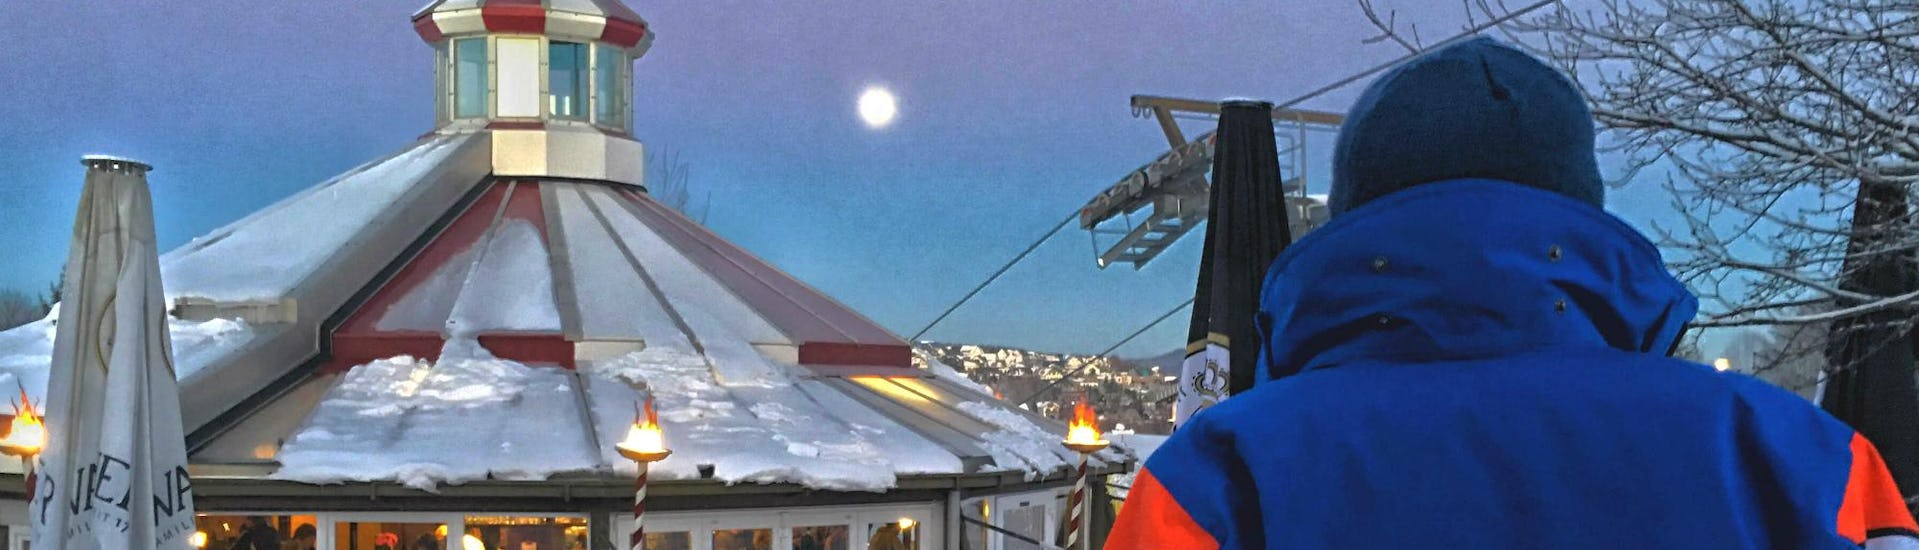 A ski instructor of the ski school Neue Skischule Winterberg is enjoying the view of the moon during the Night Ski Lessons for Kids & Adults - Beginners in Winterberg.